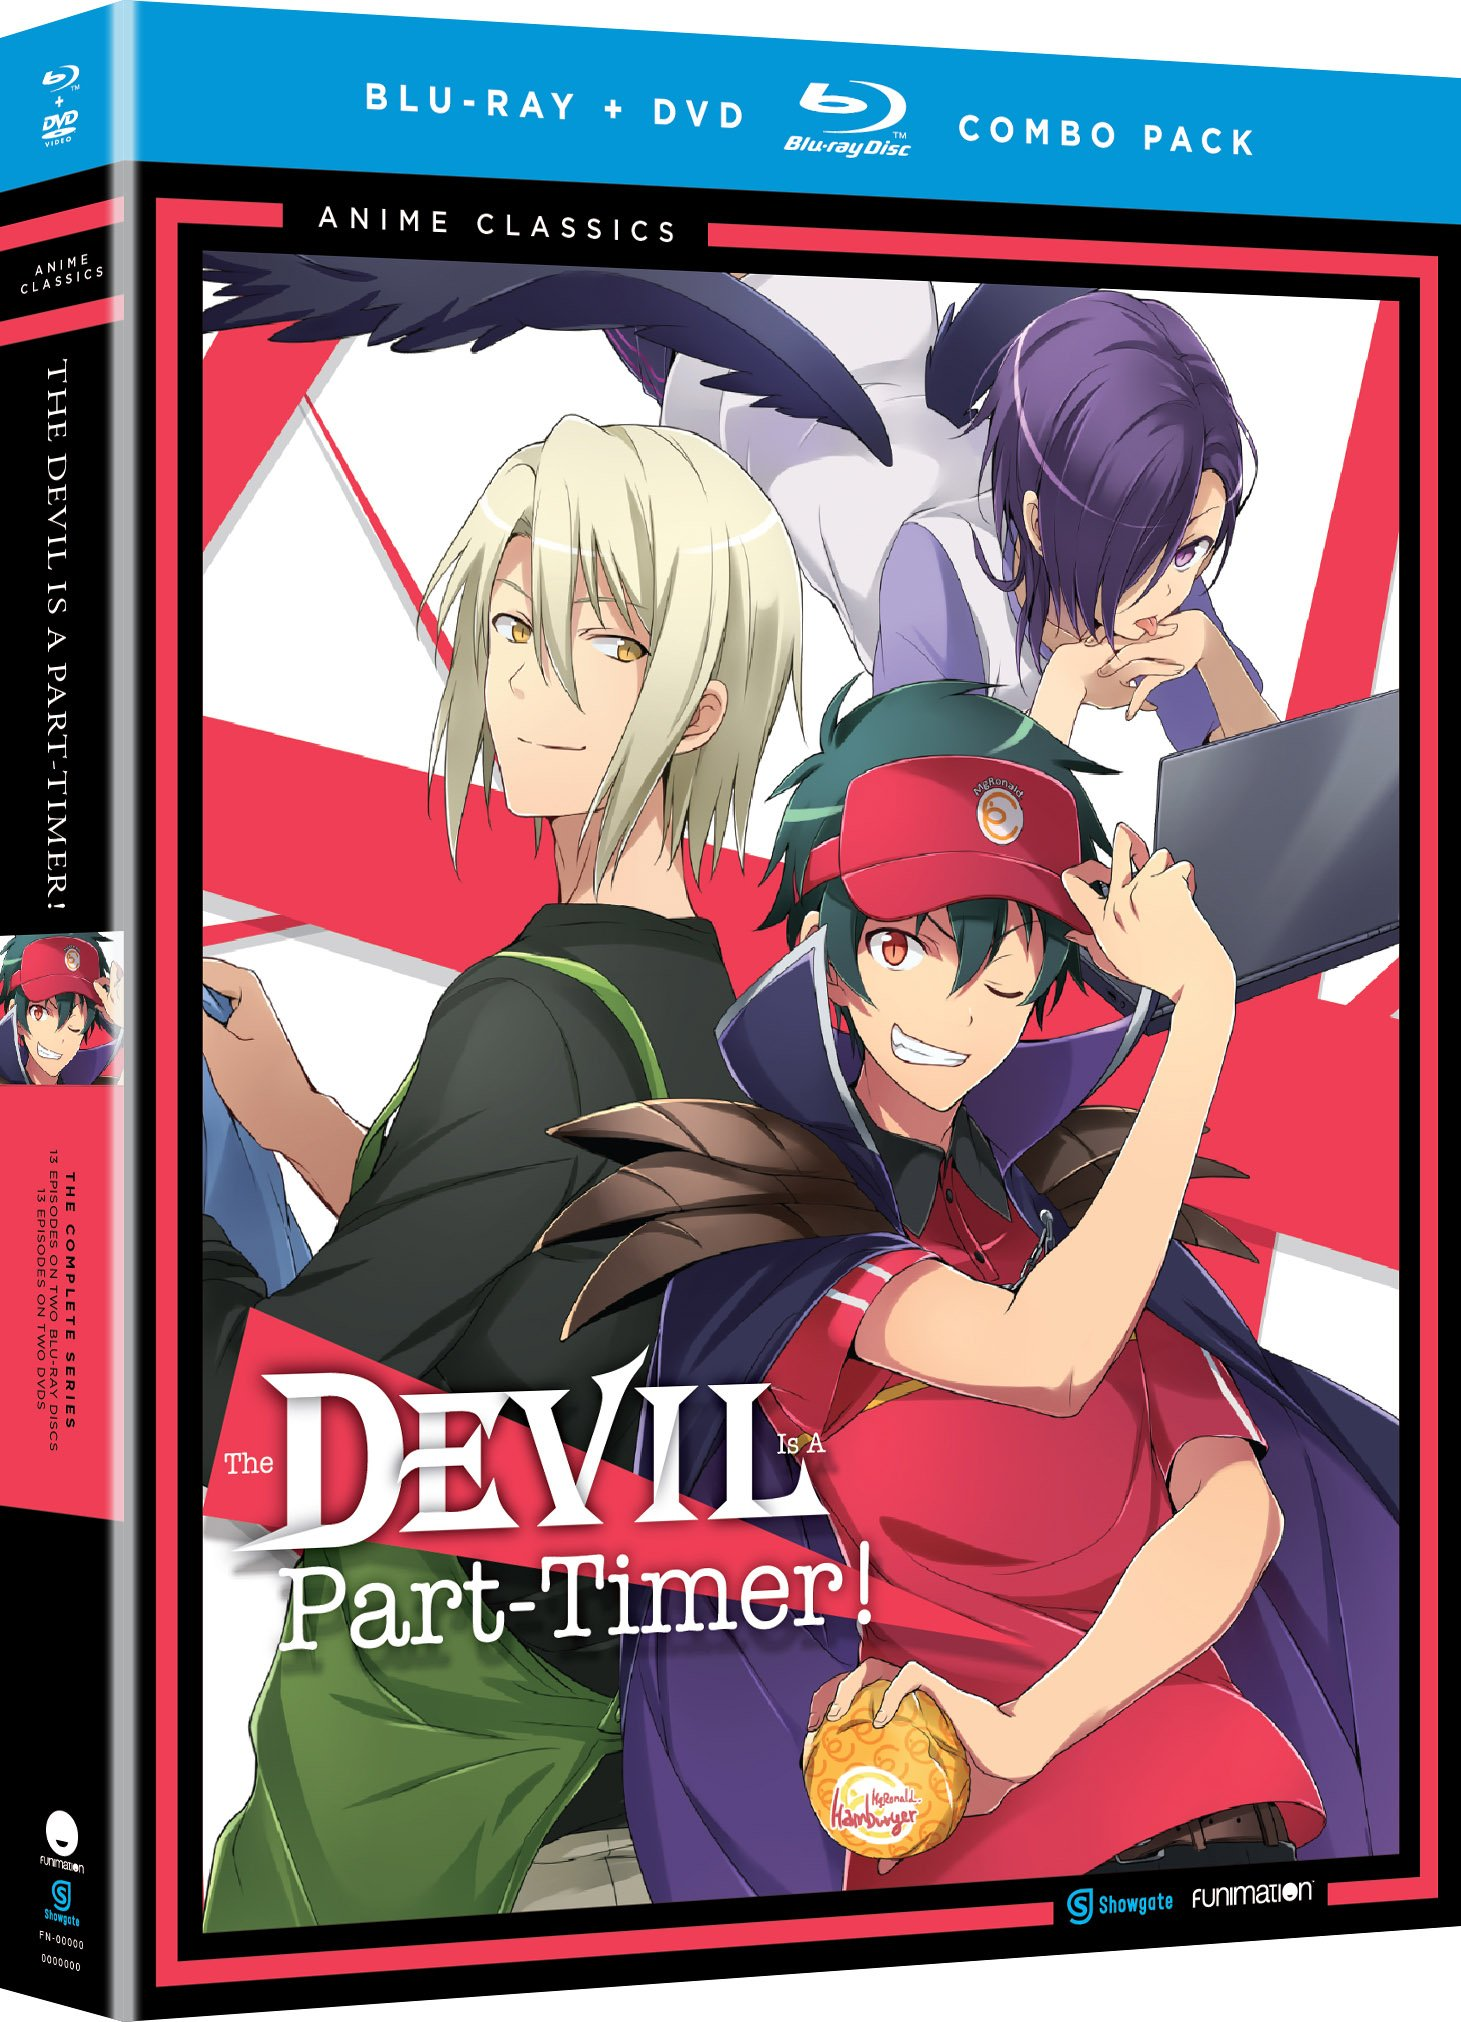 Blu-ray : The Devil is a Part Timer: The Complete Series - Anime Classics (With DVD, 4 Disc)